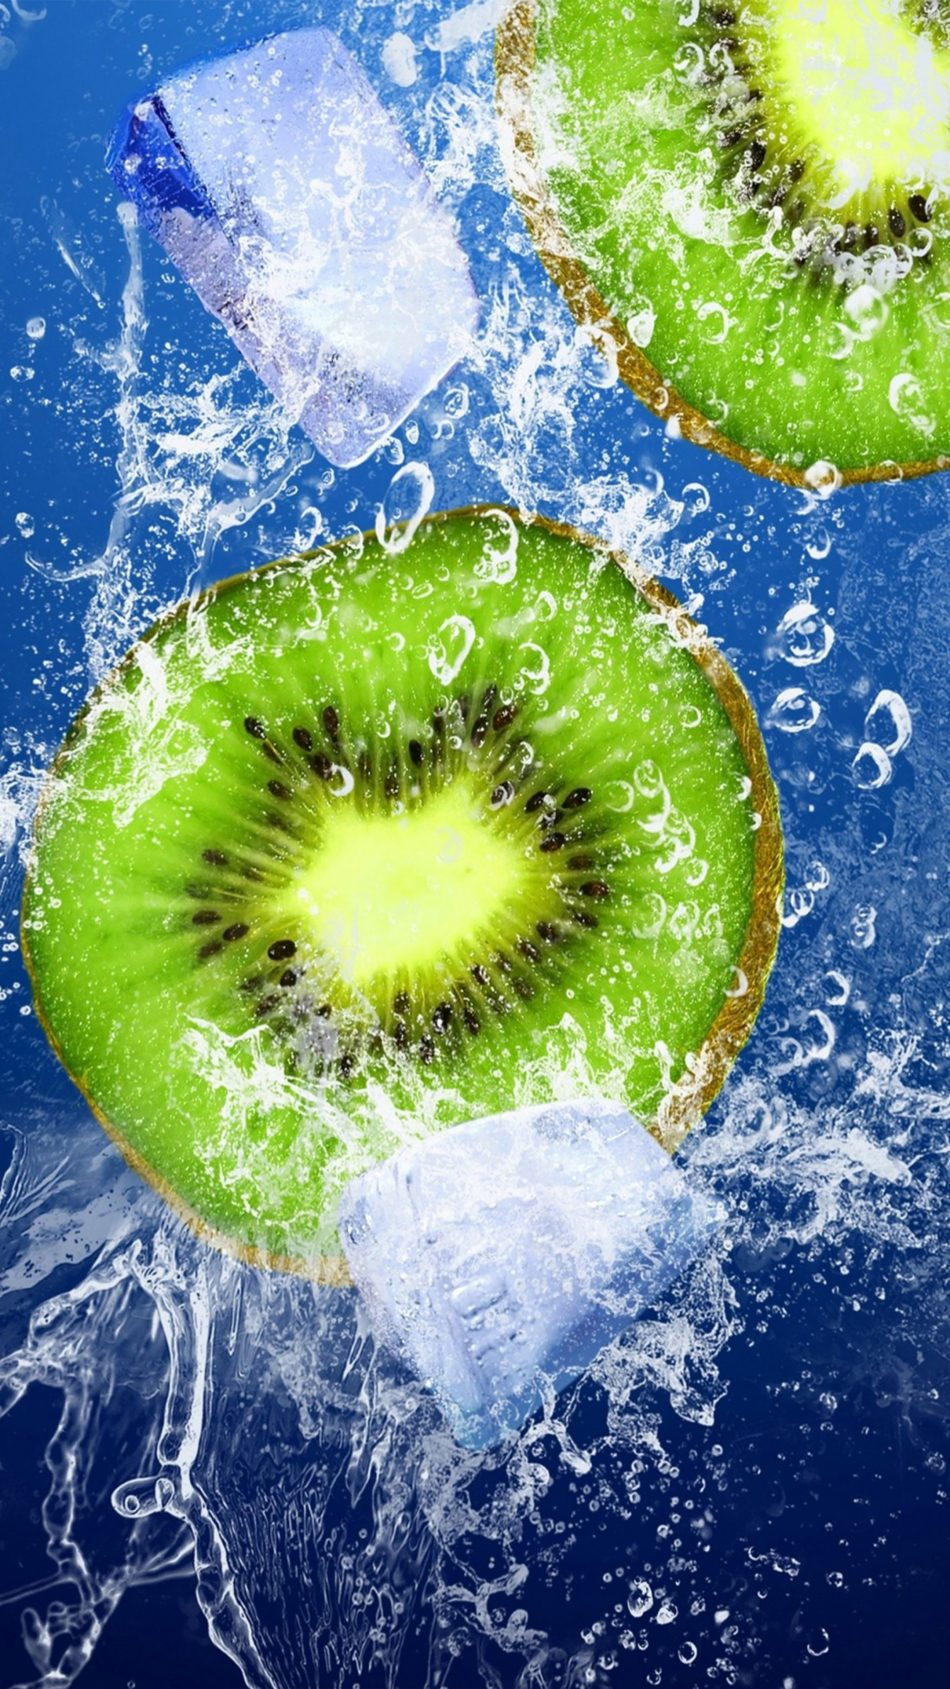 Kiwi Ice Underwater 4K Ultra HD Mobile Wallpaper